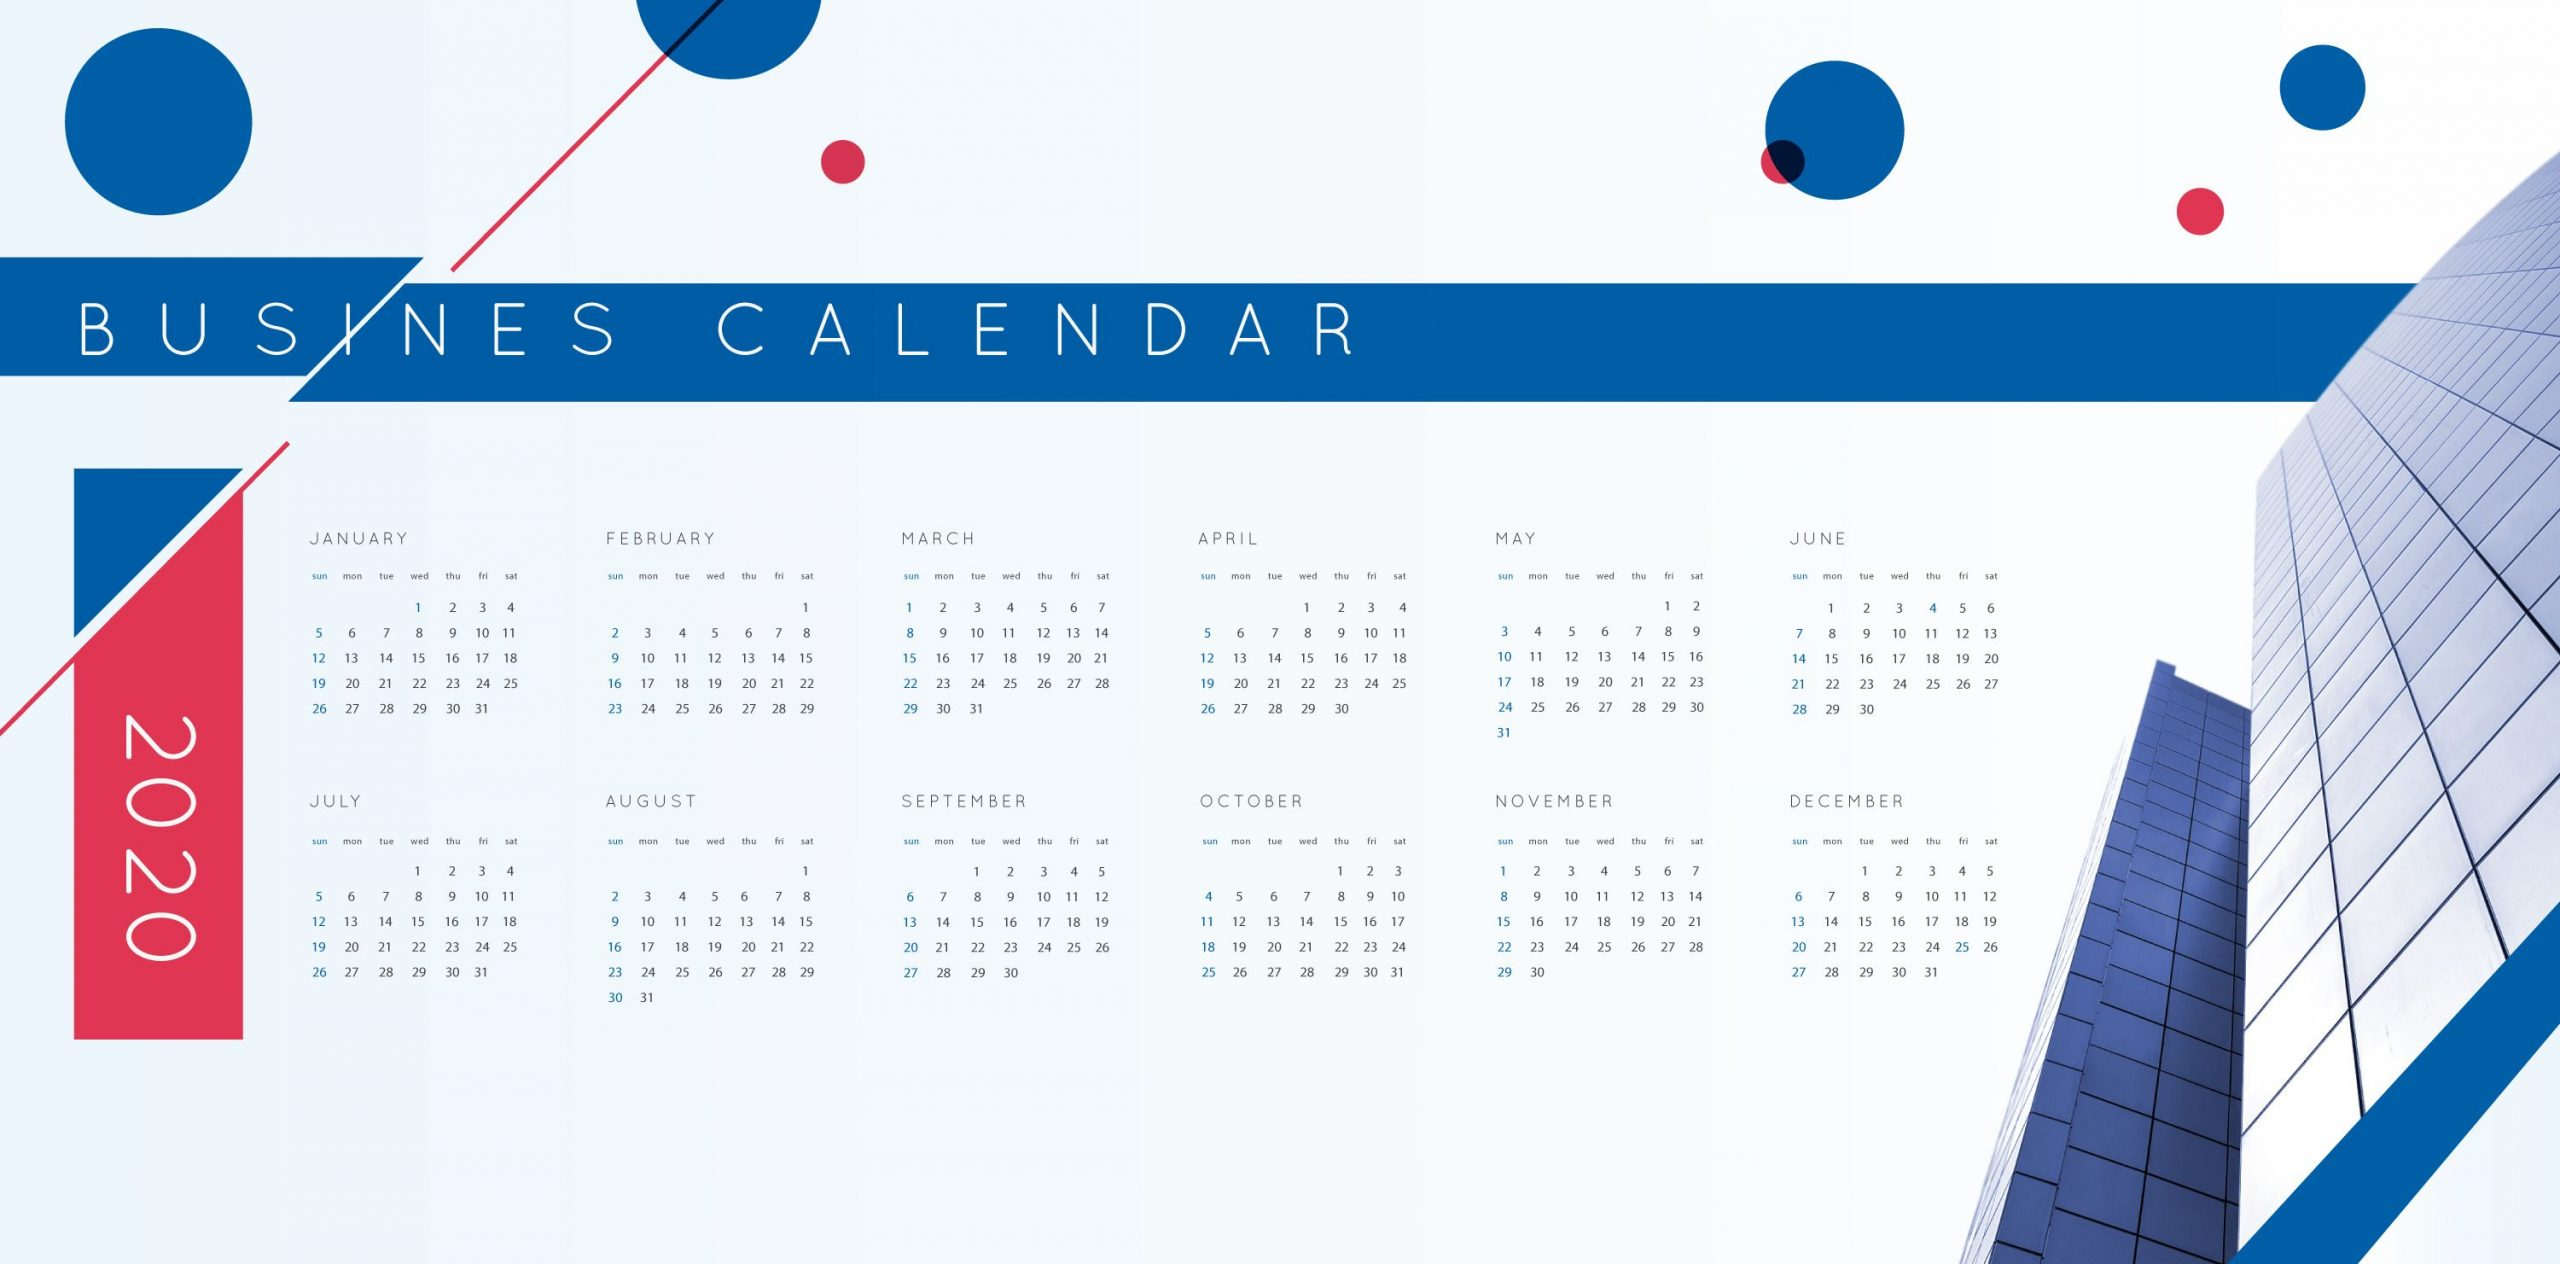 Check Out This Vector Business Calendar For The Year 2020